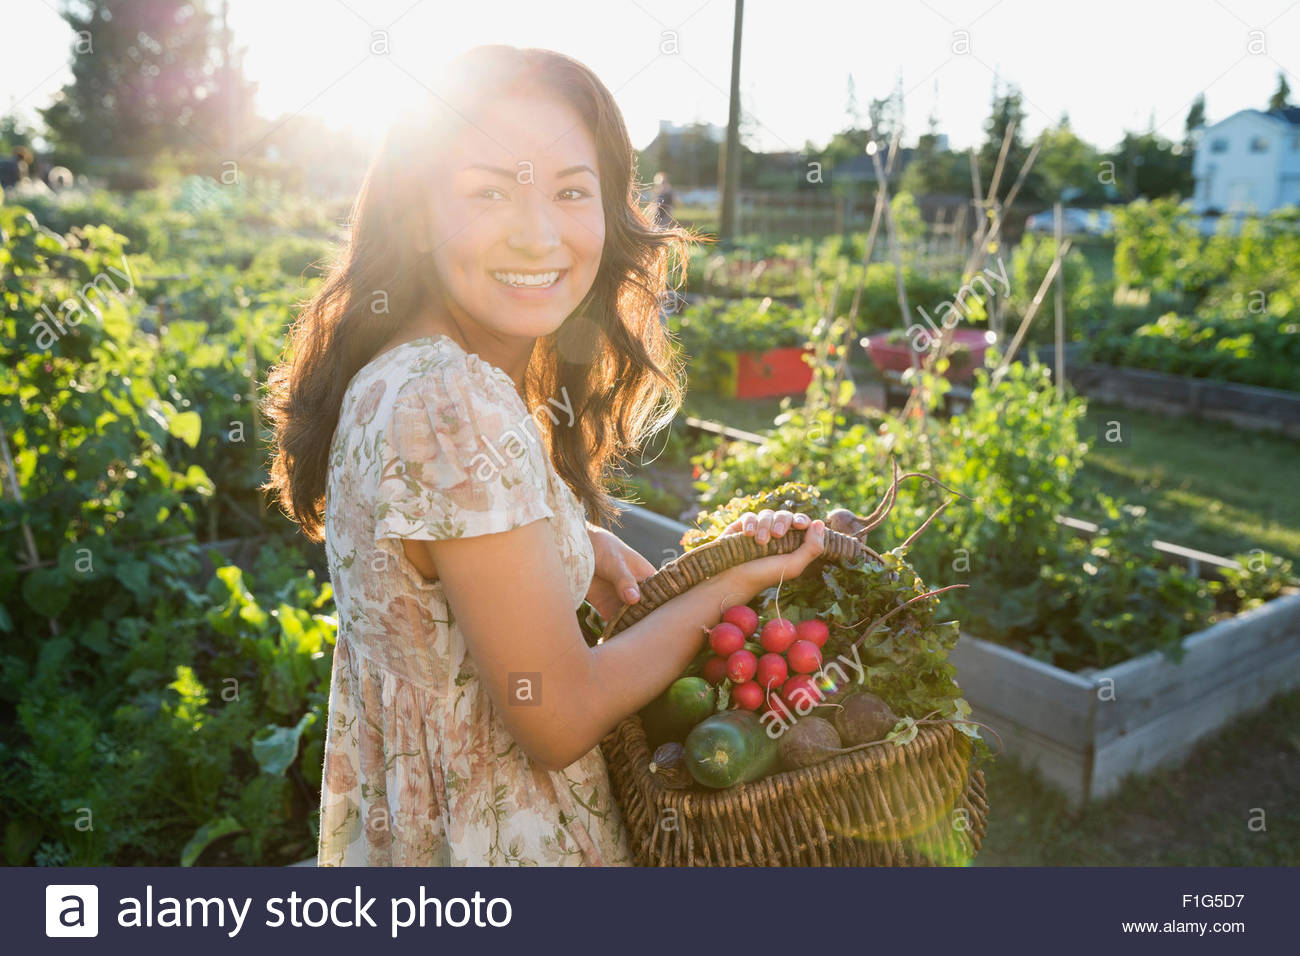 La cueillette des légumes Smiling teenage girl in garden Photo Stock